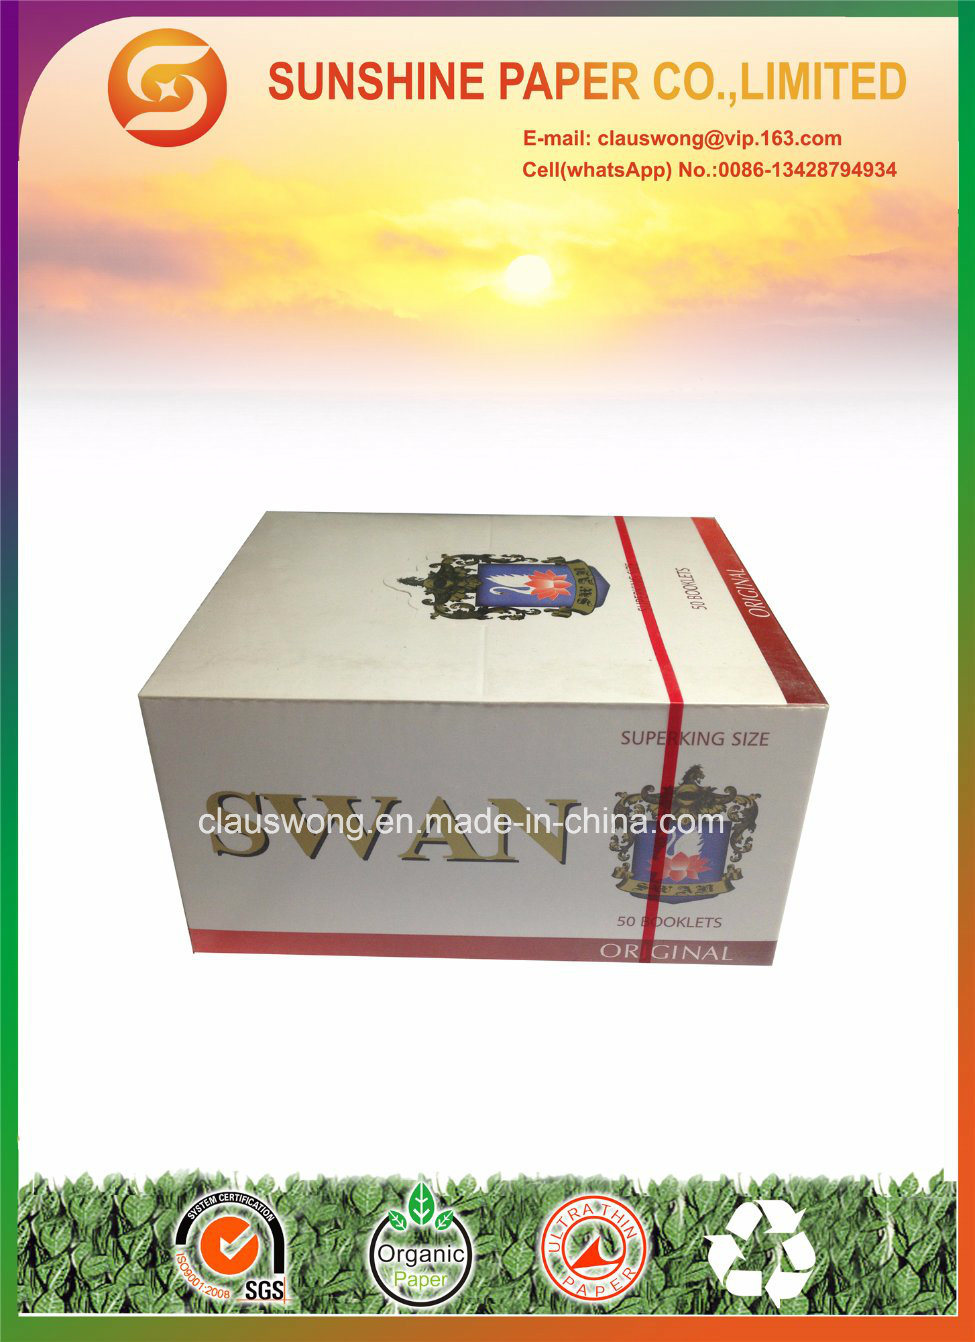 Superking Size Rolling Paper with 20GSM White Paper